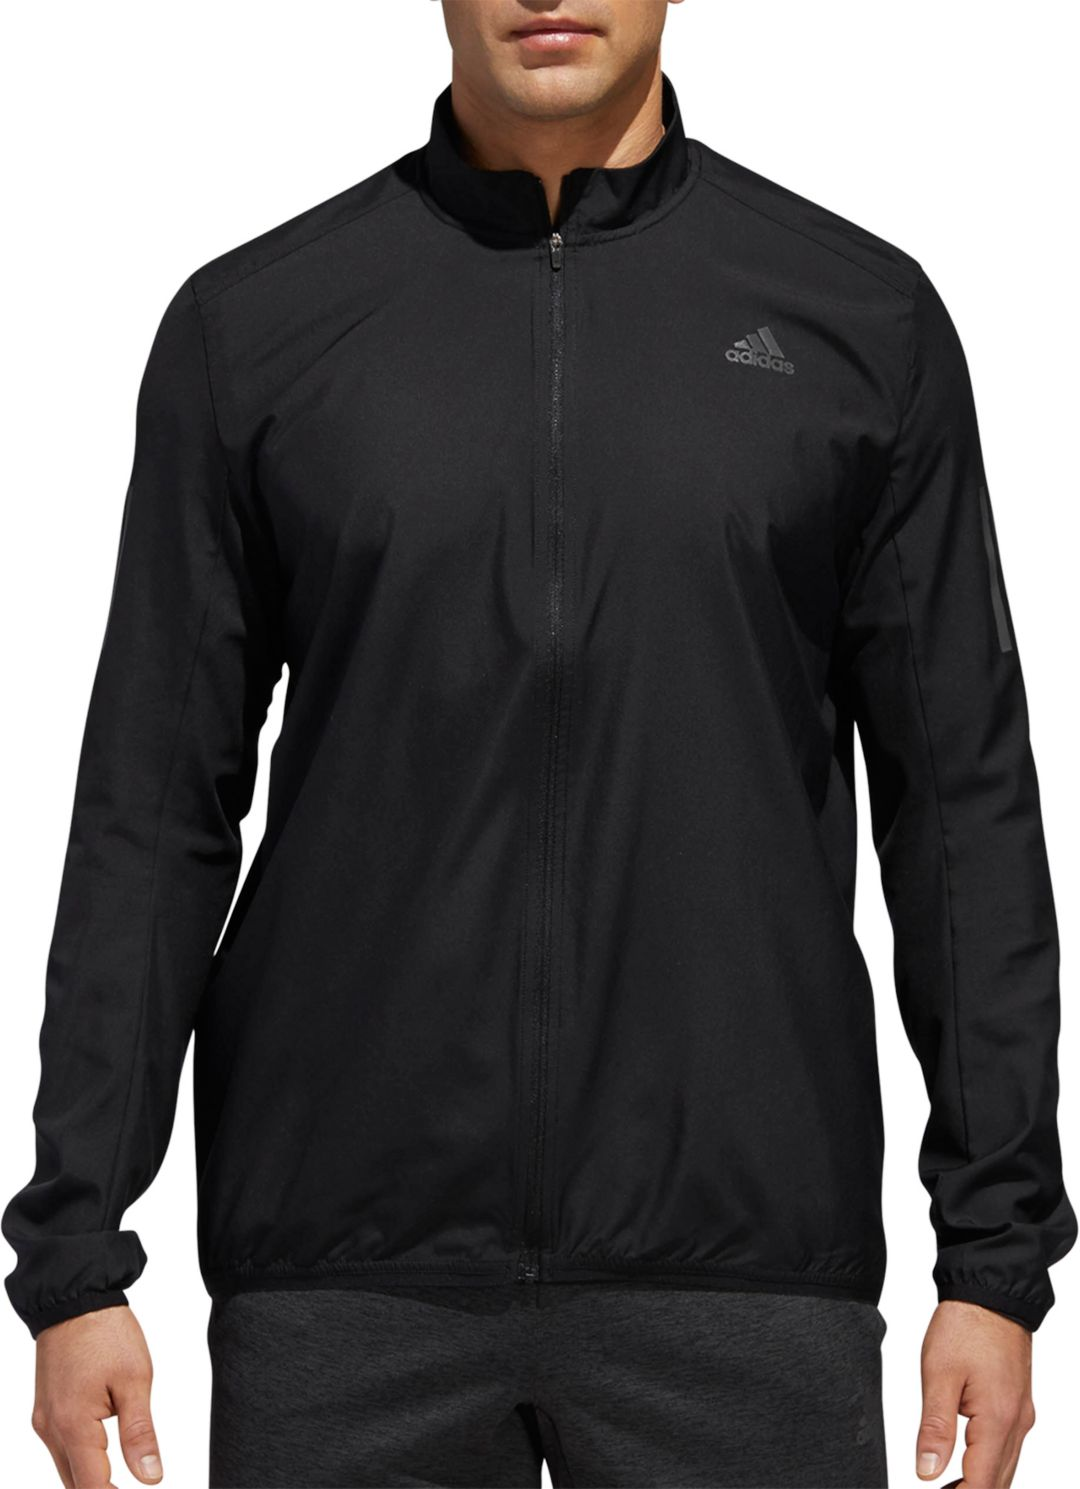 9f72b539f adidas Men's Response Wind Running Jacket